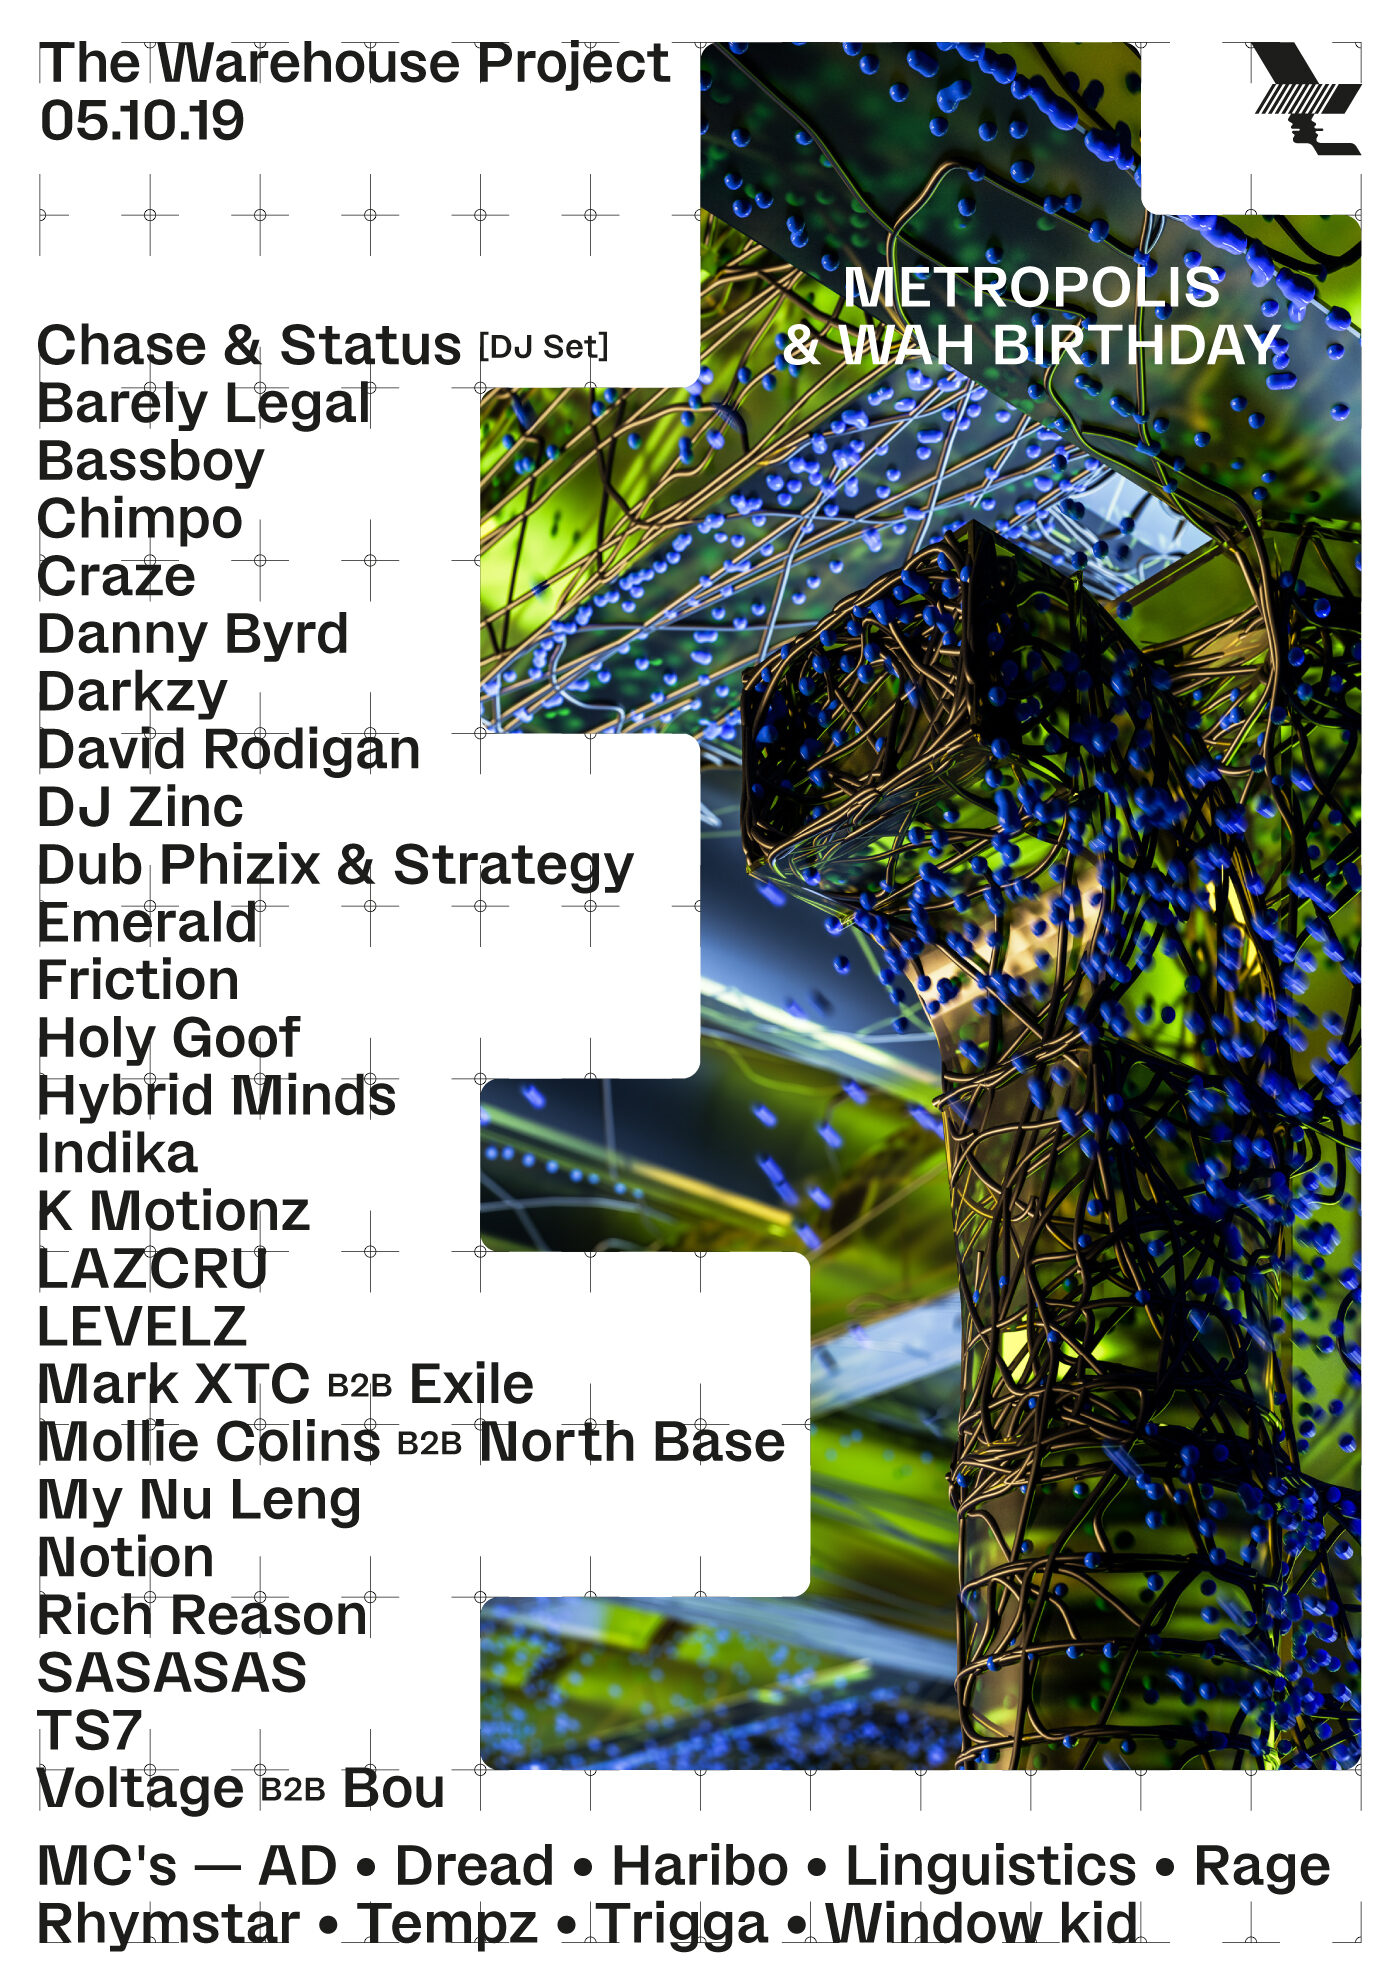 WHP Lineup Poster04